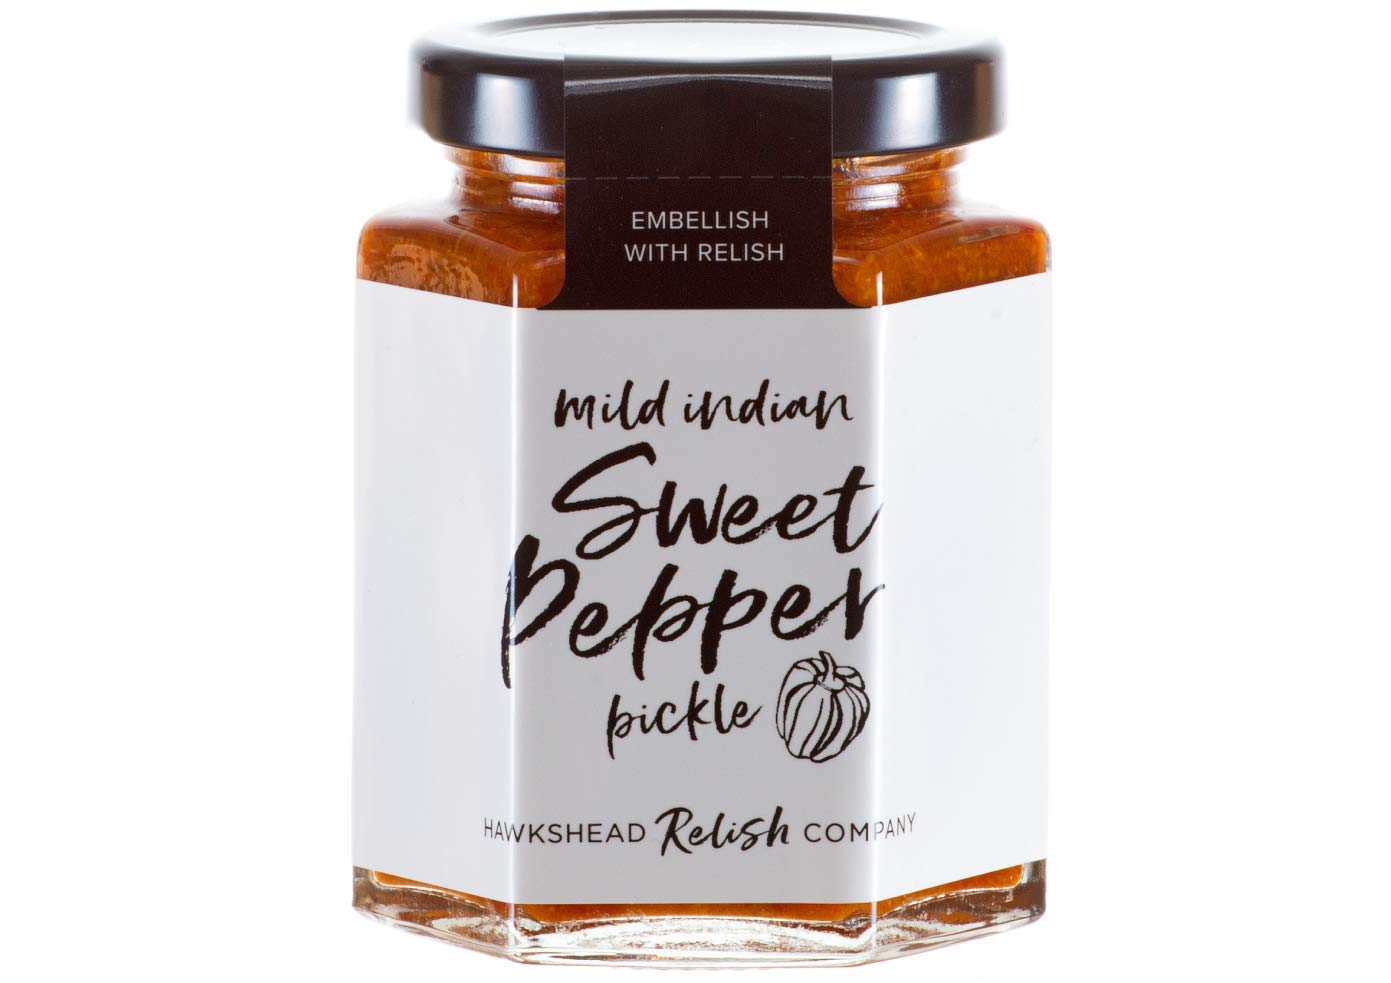 Hawkshead Relish Co Mild Indian Sweet Pepper Pickle